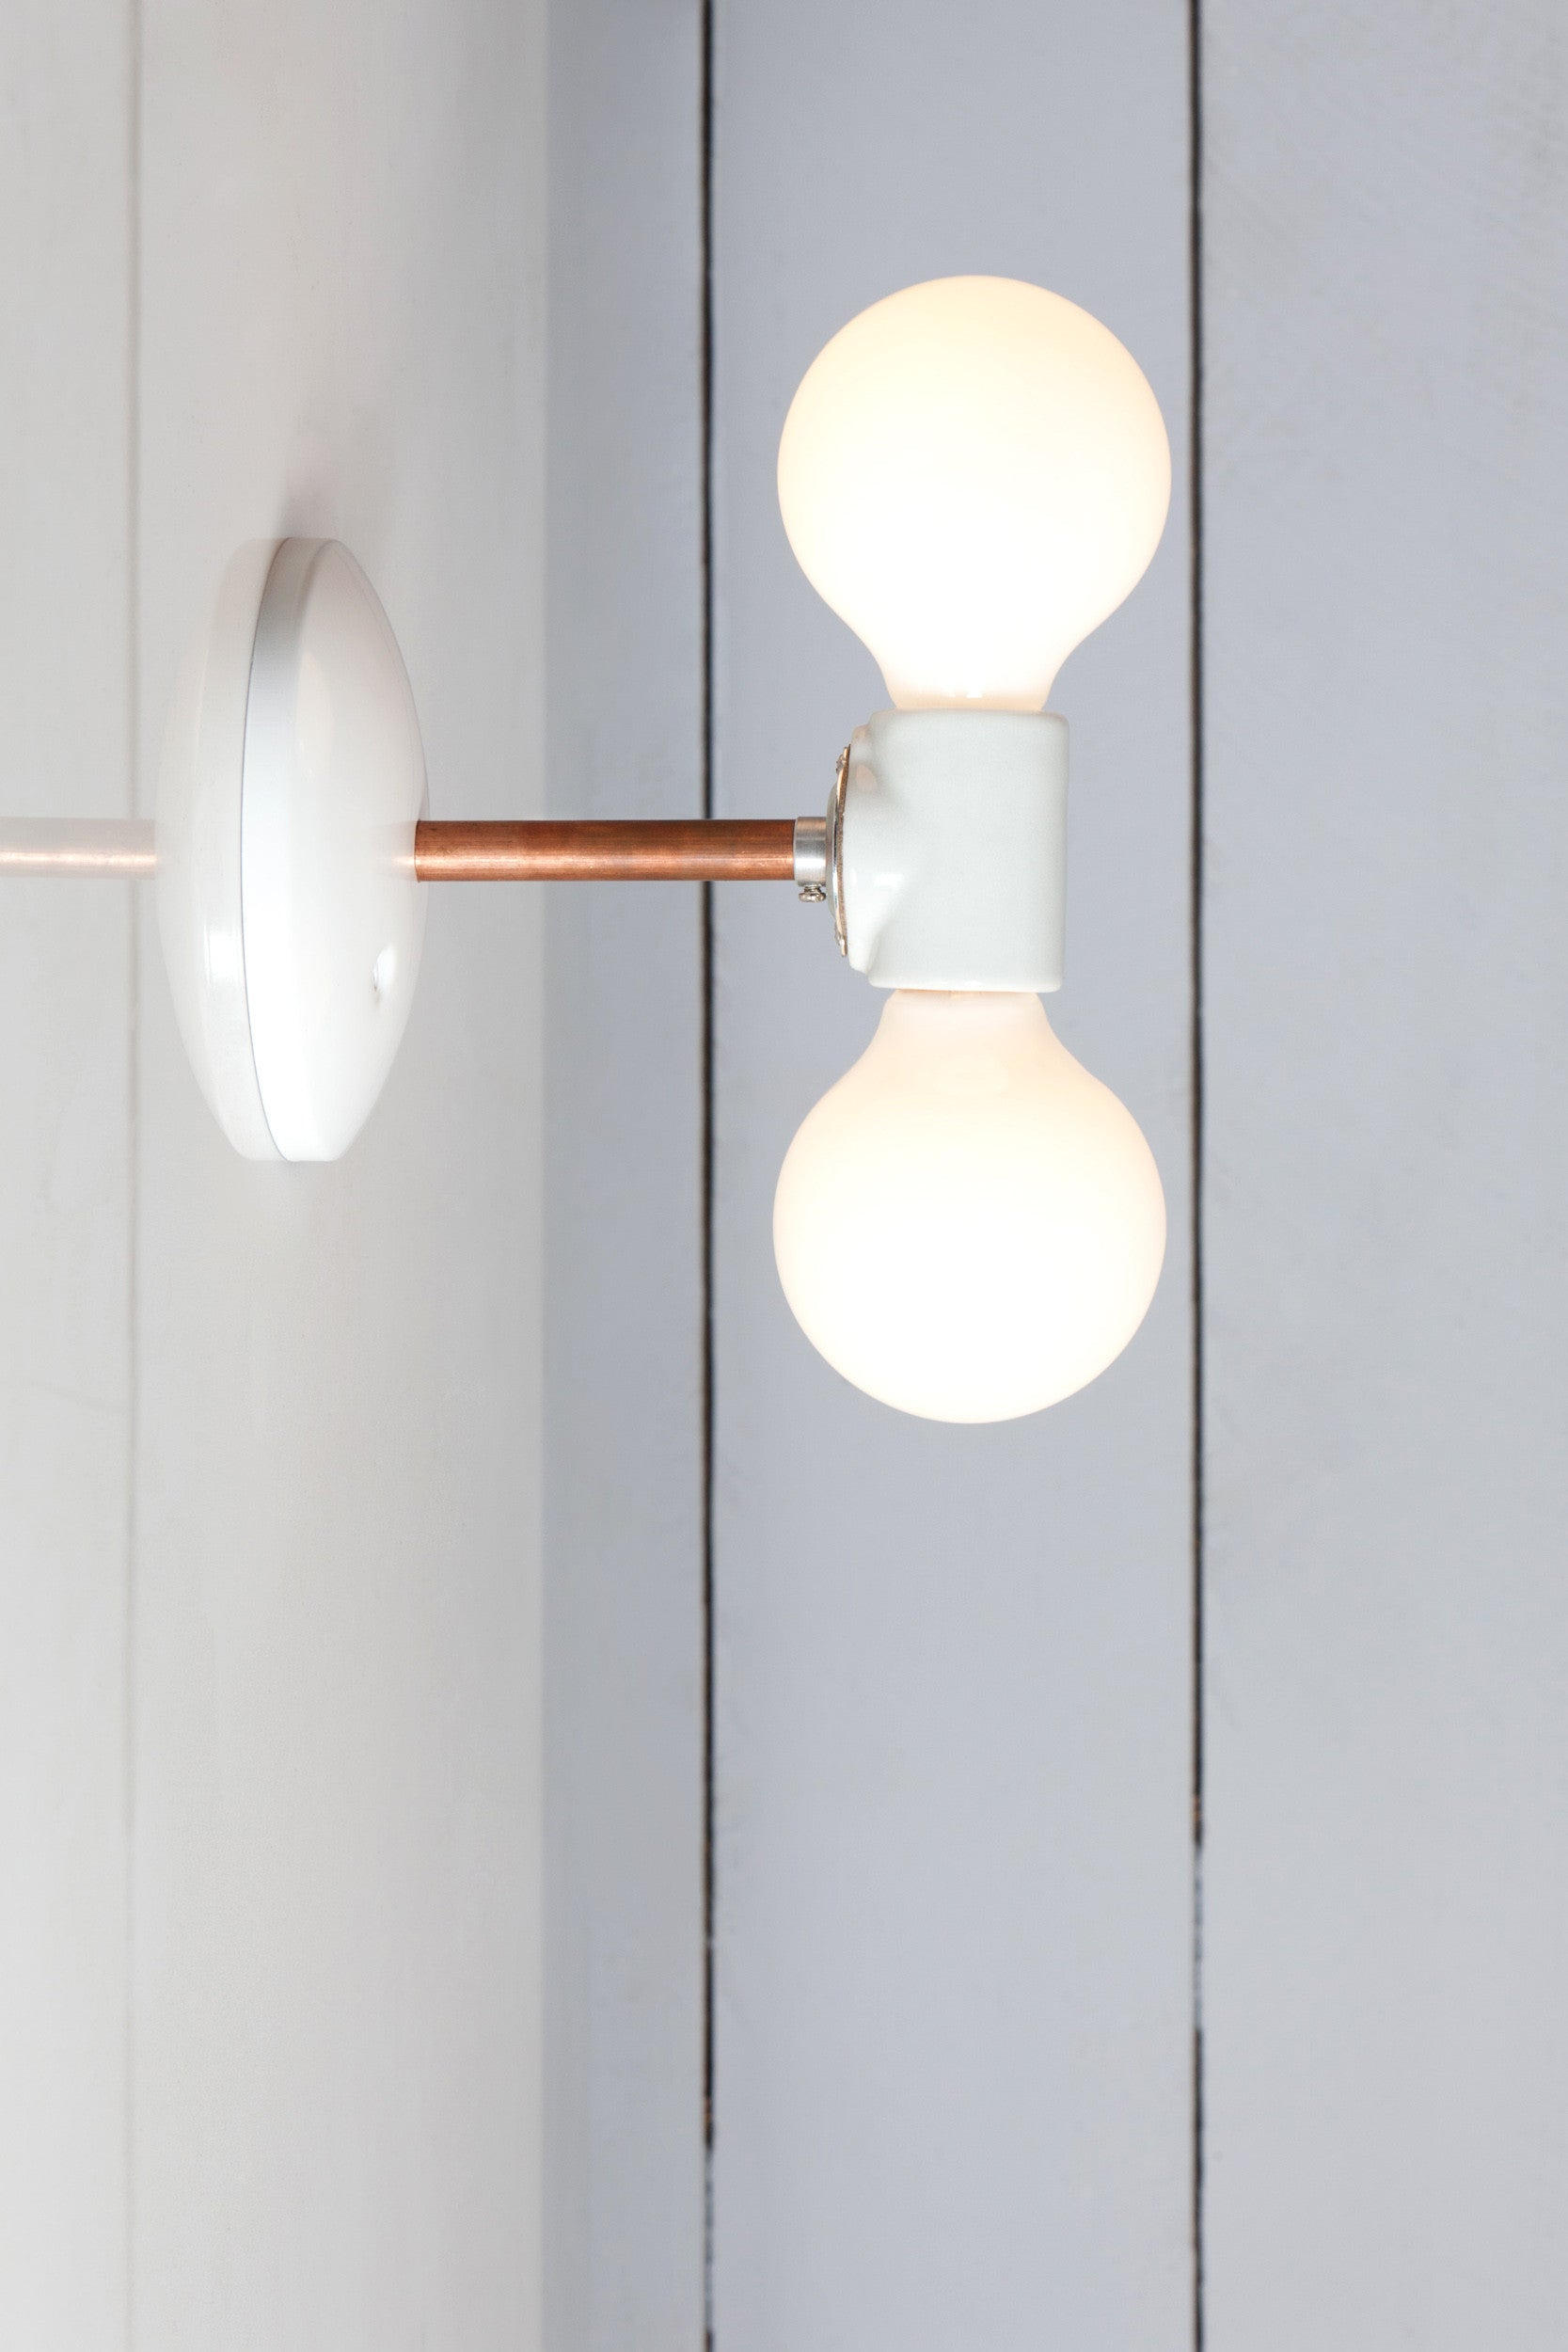 Double Copper Wall Sconce Light Bare Bulb Lamp Industrial Light Electric